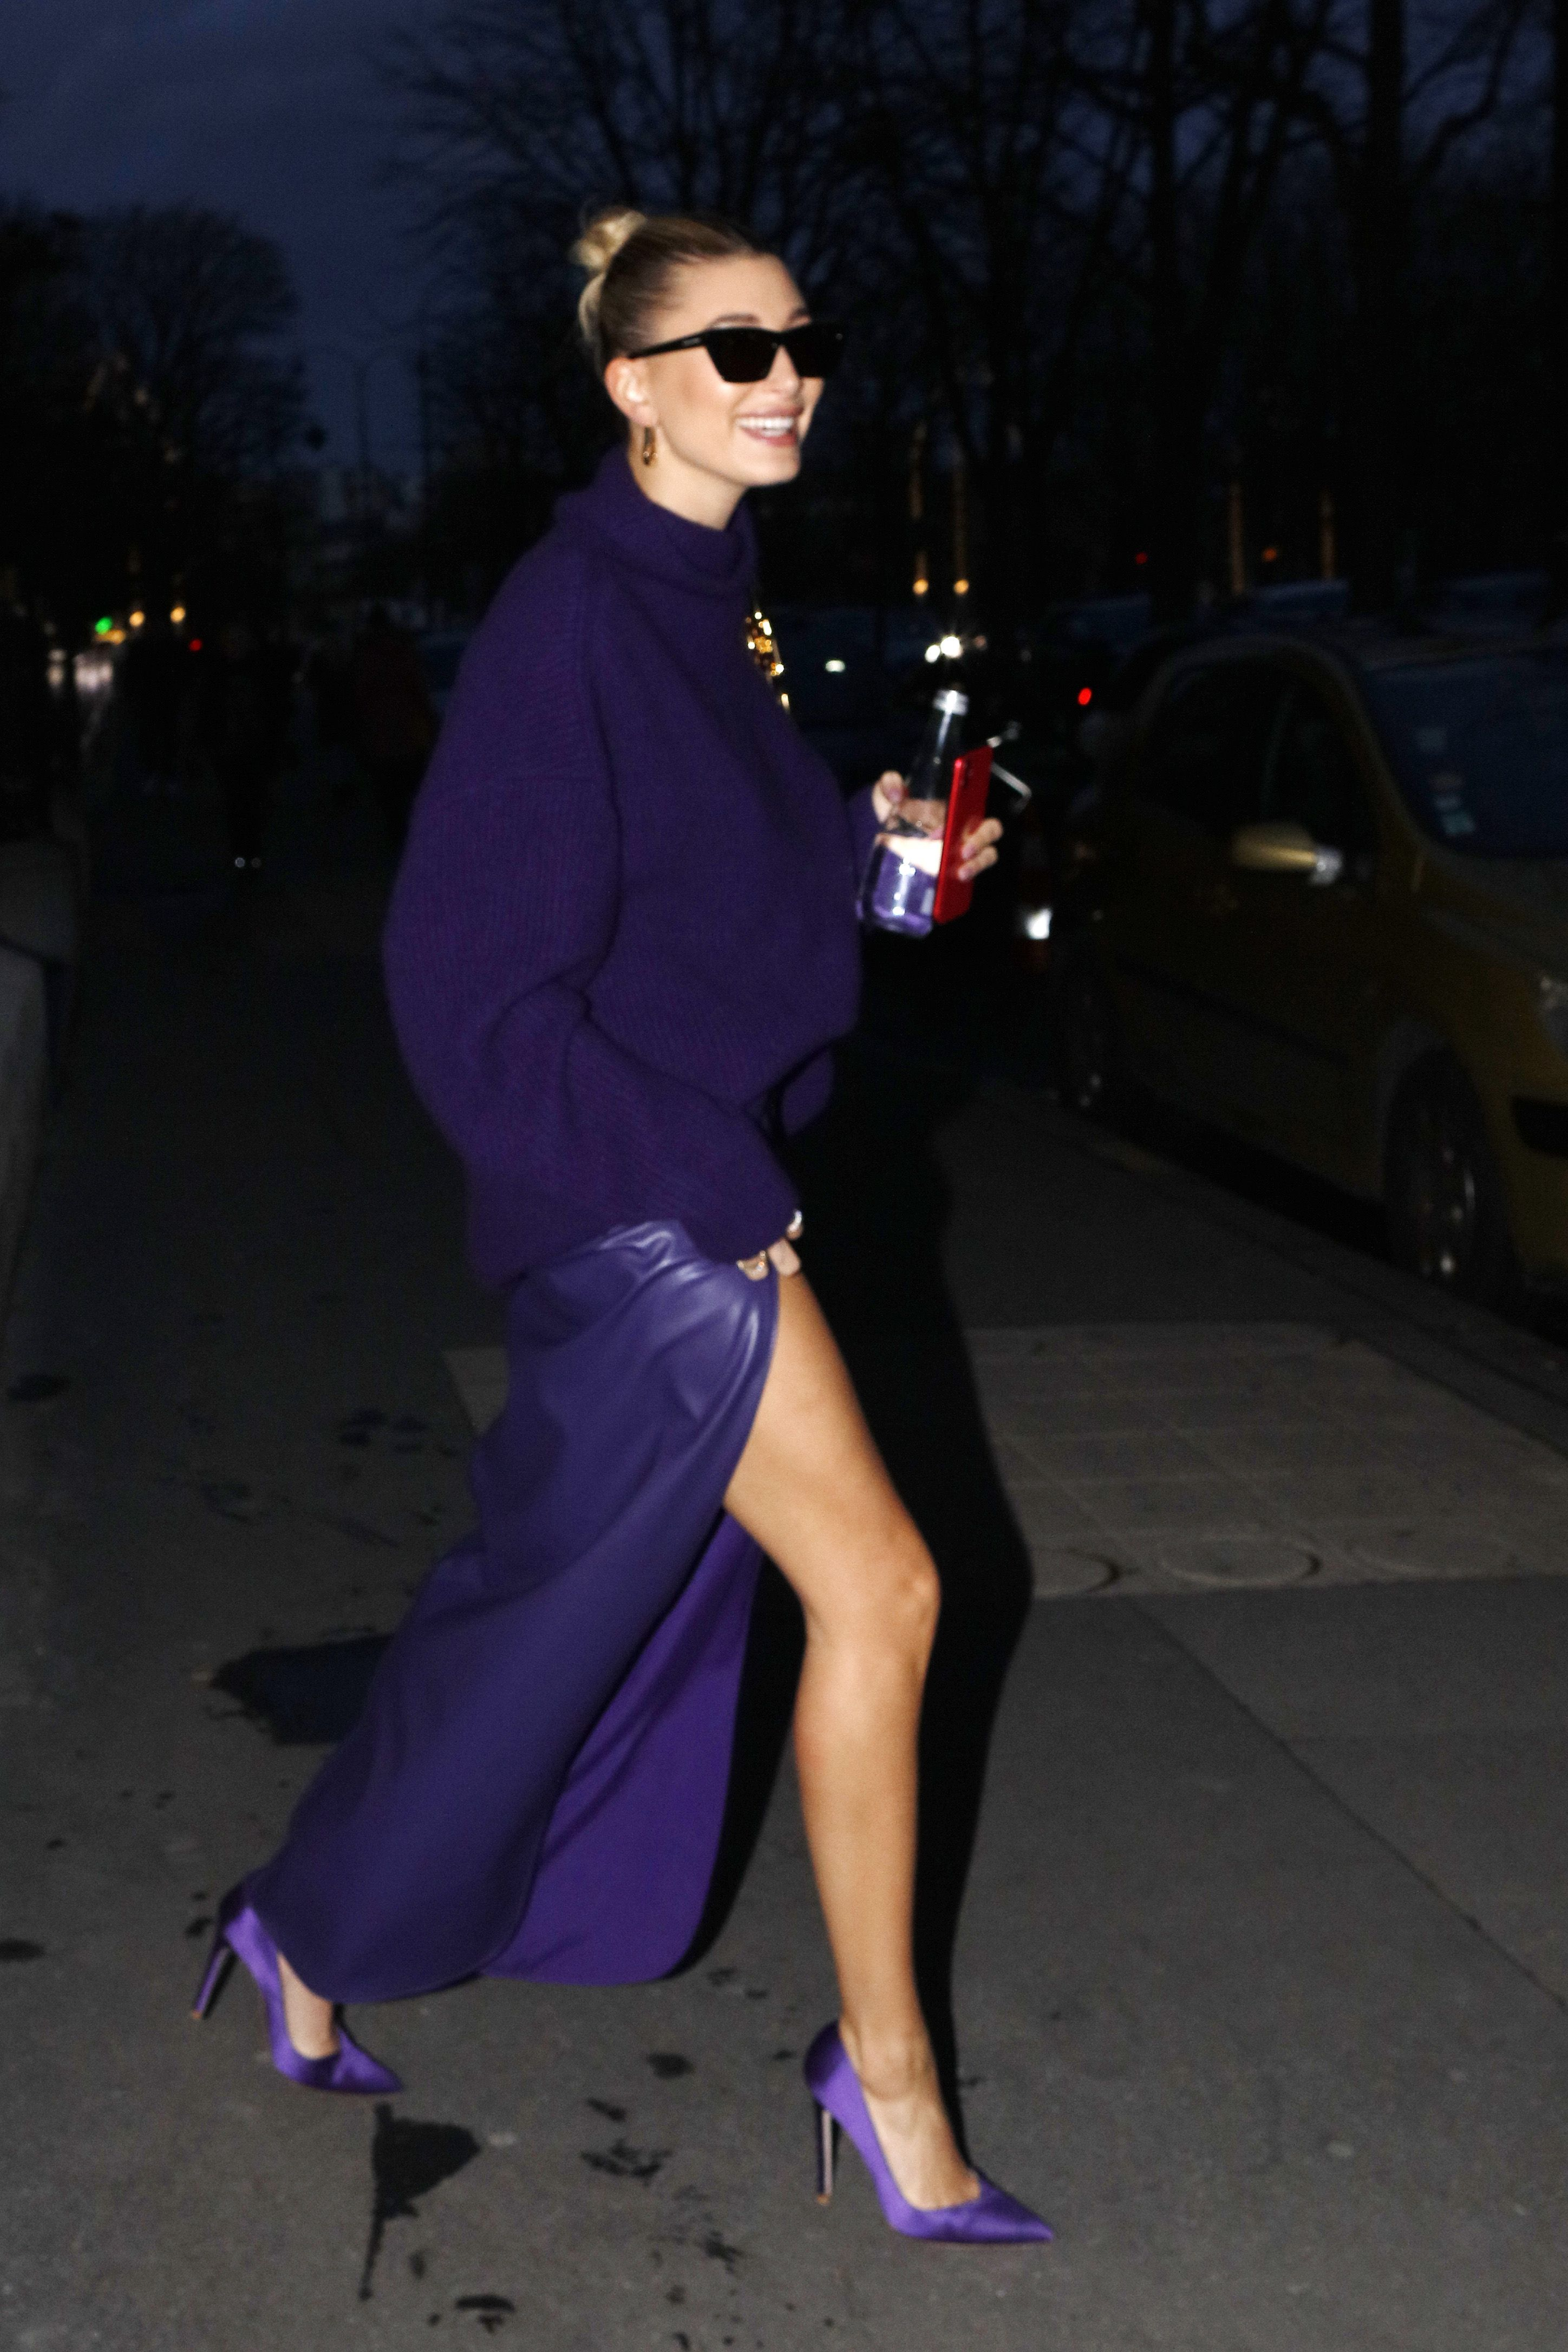 hailey bieber seen out and about in paris, france, on february 26, 2020 photo by mehdi taamallahnurphoto via getty images